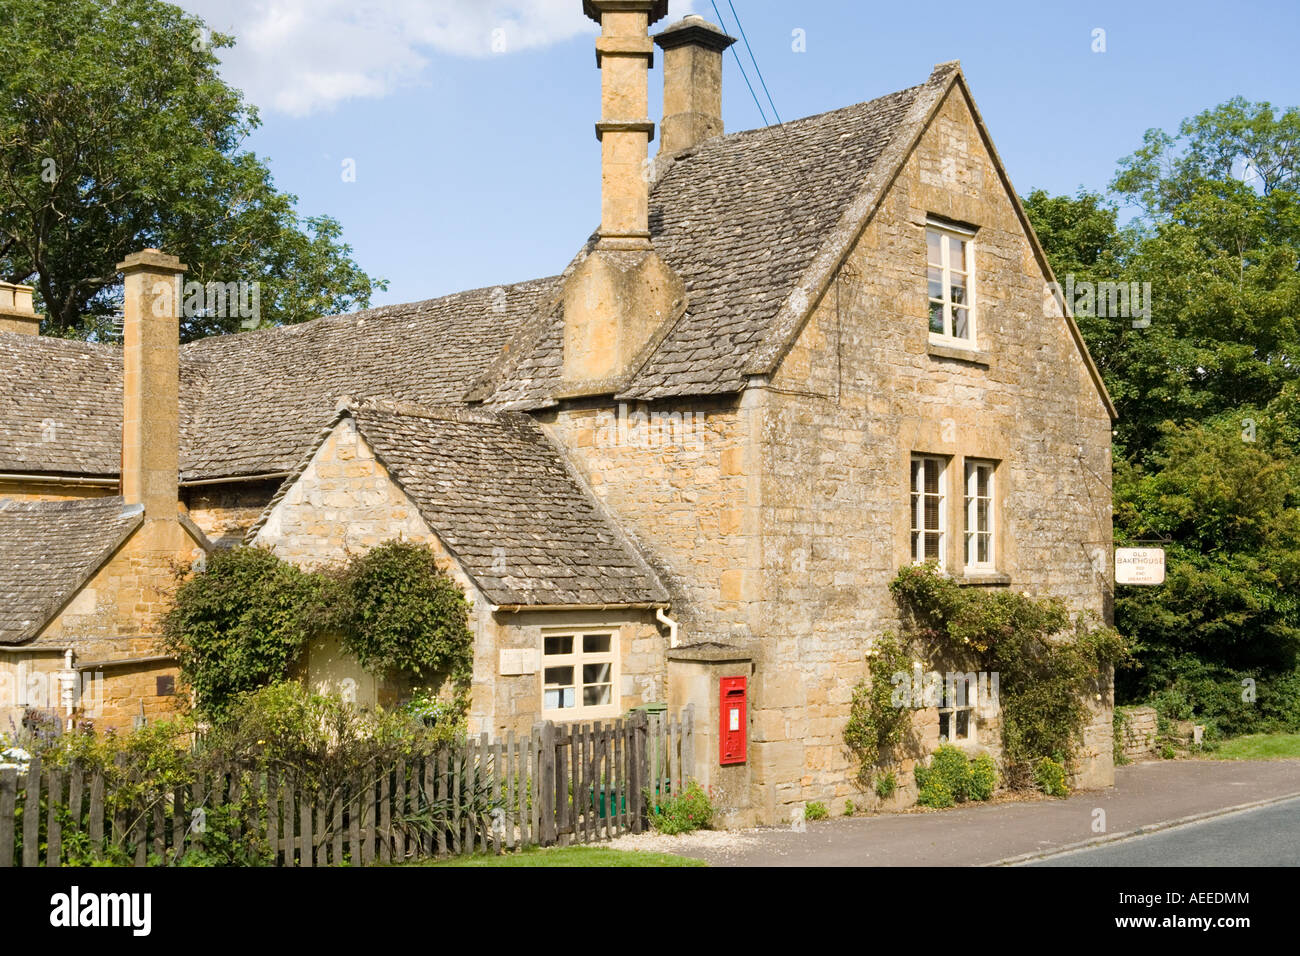 The Old Bakehouse teashop and B&B in the Cotswold village of Stanway, Gloucestershire - Stock Image